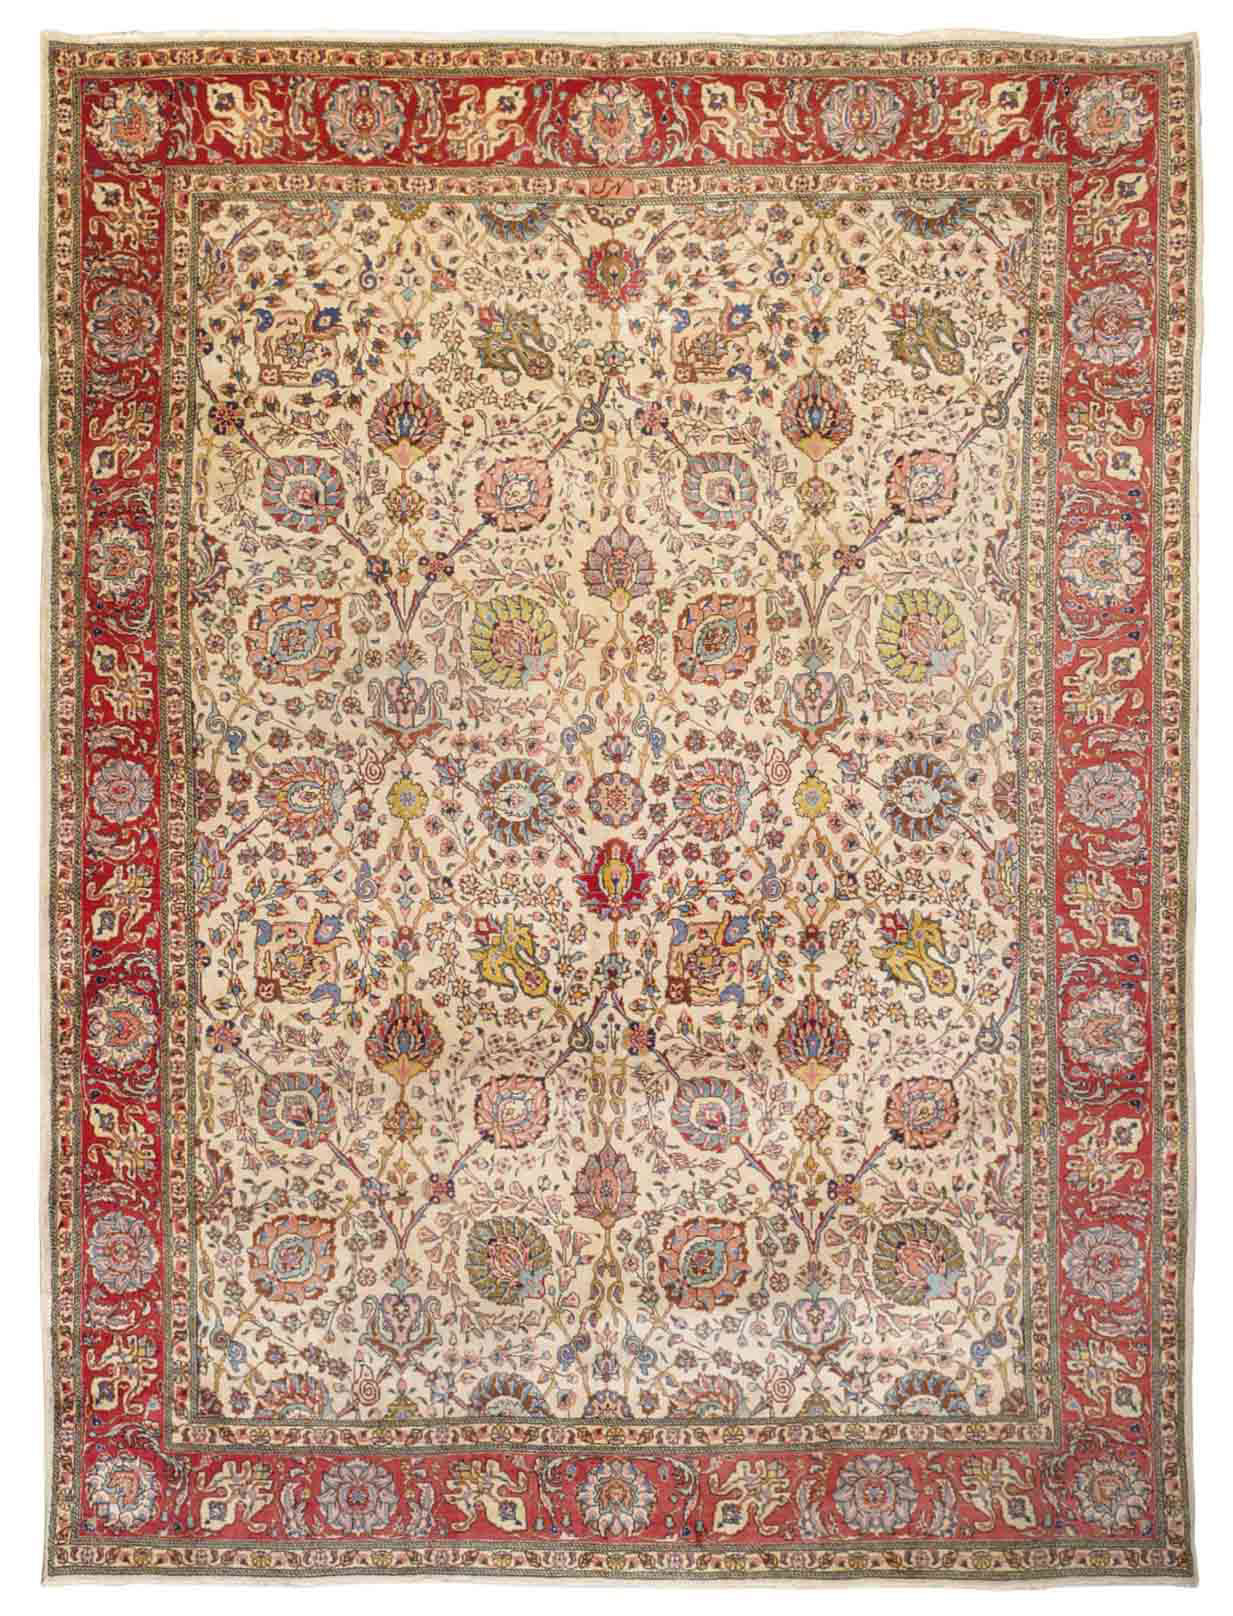 A TABRIZ CARPET OF SHAH ABBAS